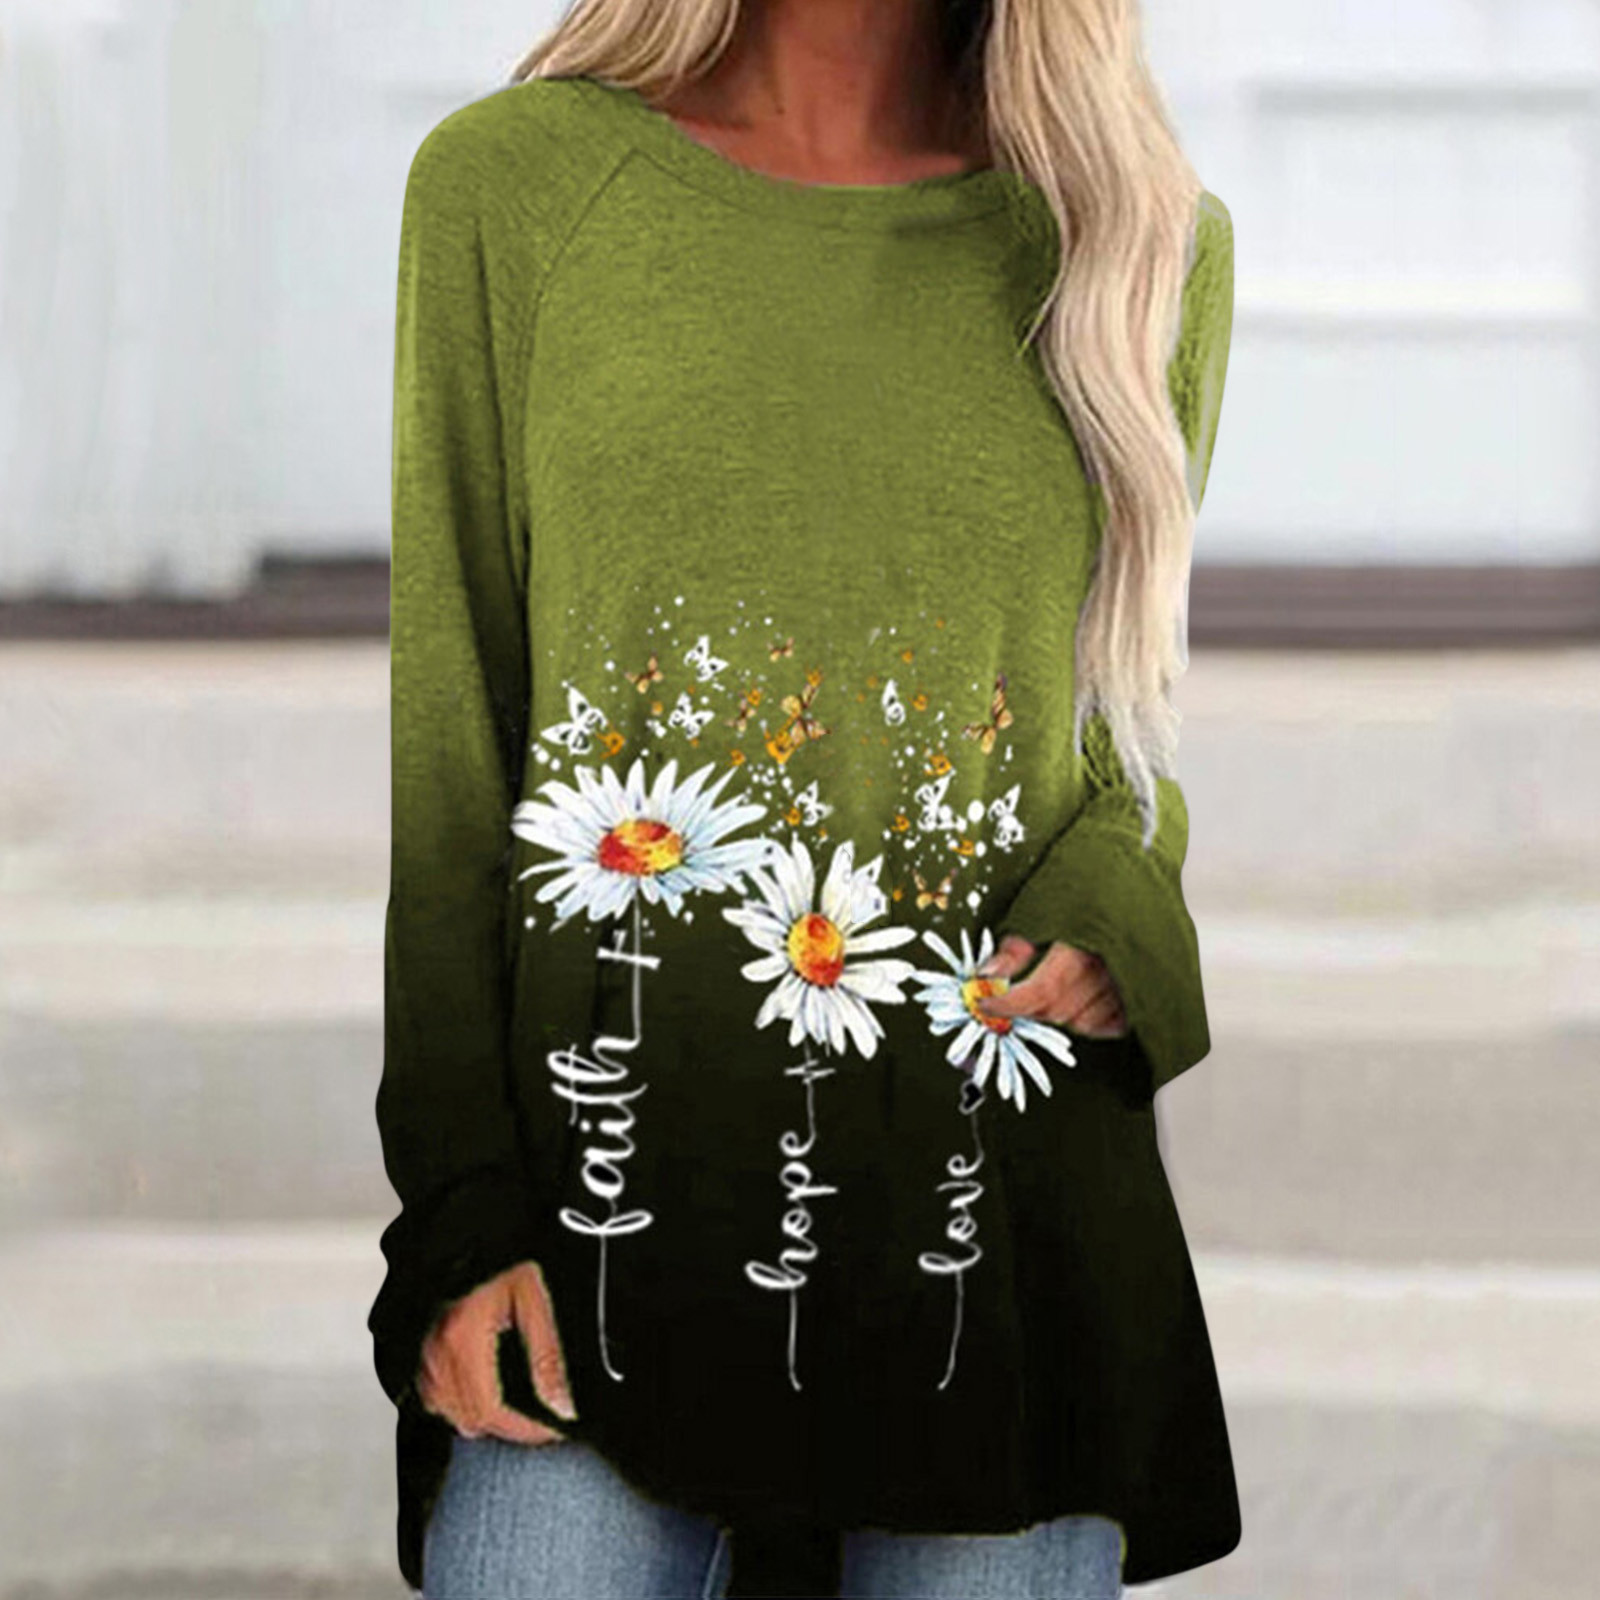 40# Long Shirts Women Fashion Print O Neck Long Sleeve Womens Tops And Blouses Casual Loose Pullover Tops Tunics Blusas